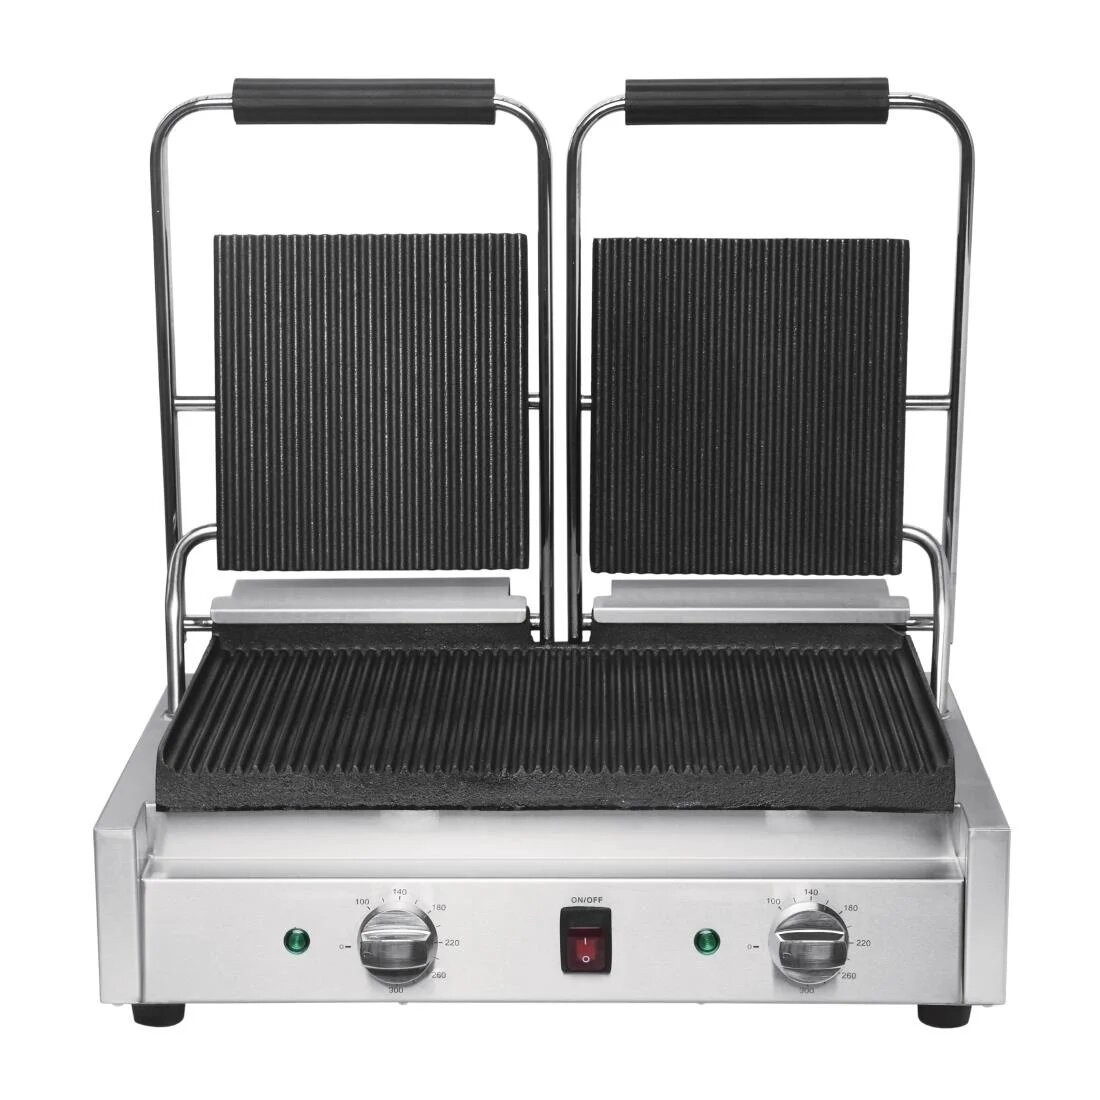 Buffalo DY994 Bistro Double Ribbed Contact Grill